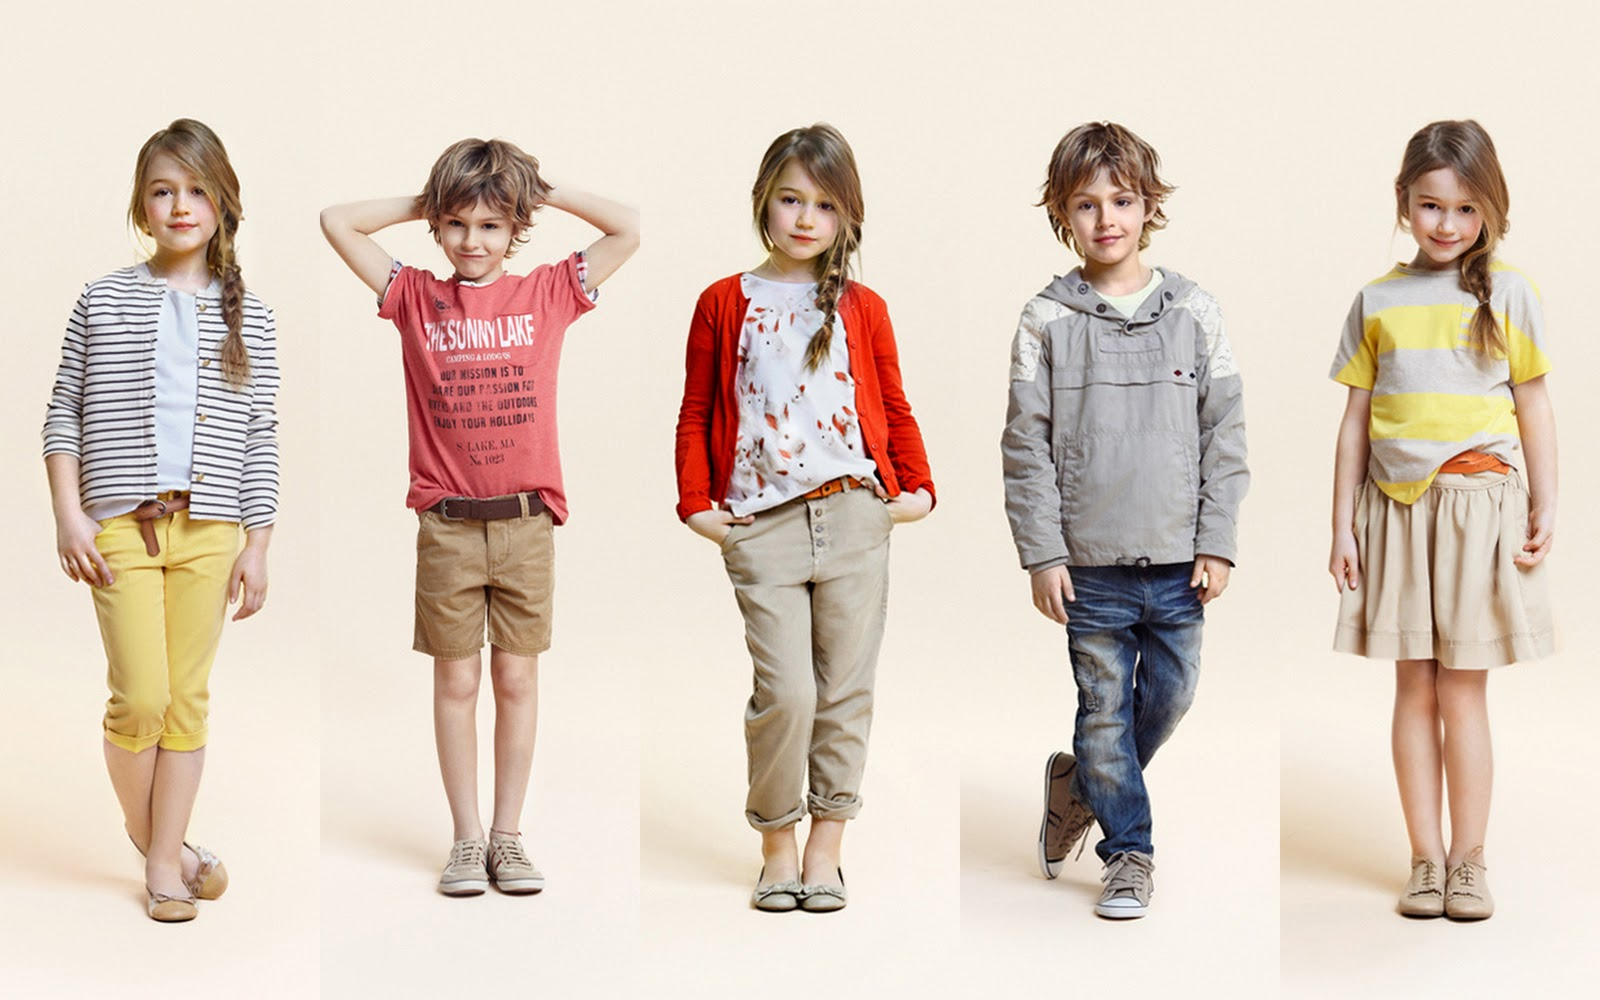 The Top 5 Websites for Stylish and Trendy Kids Clothes Under $40 March 26, I am a big proponent of supporting small business especially when those business owners are other talented Mom's and Dad's trying to use their skills and expertise in a way that lends them more time with their kids.